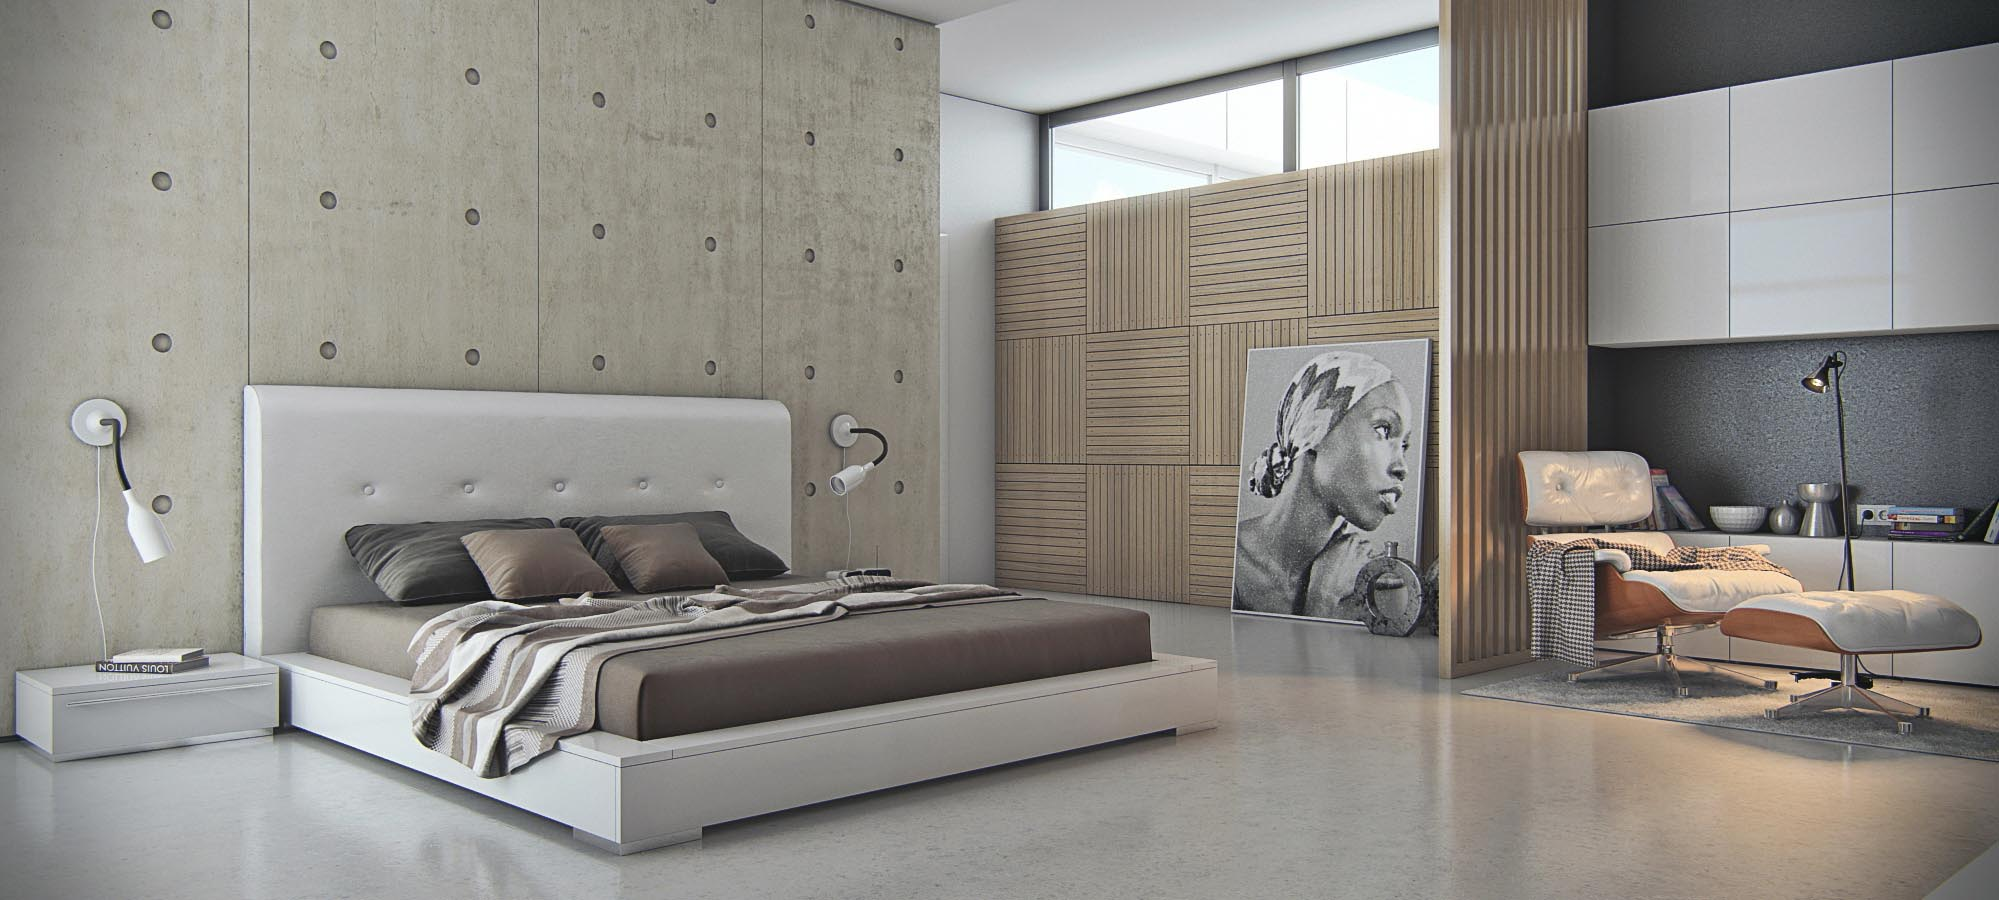 gray-concrete-bedroom-feature-wall.jpeg